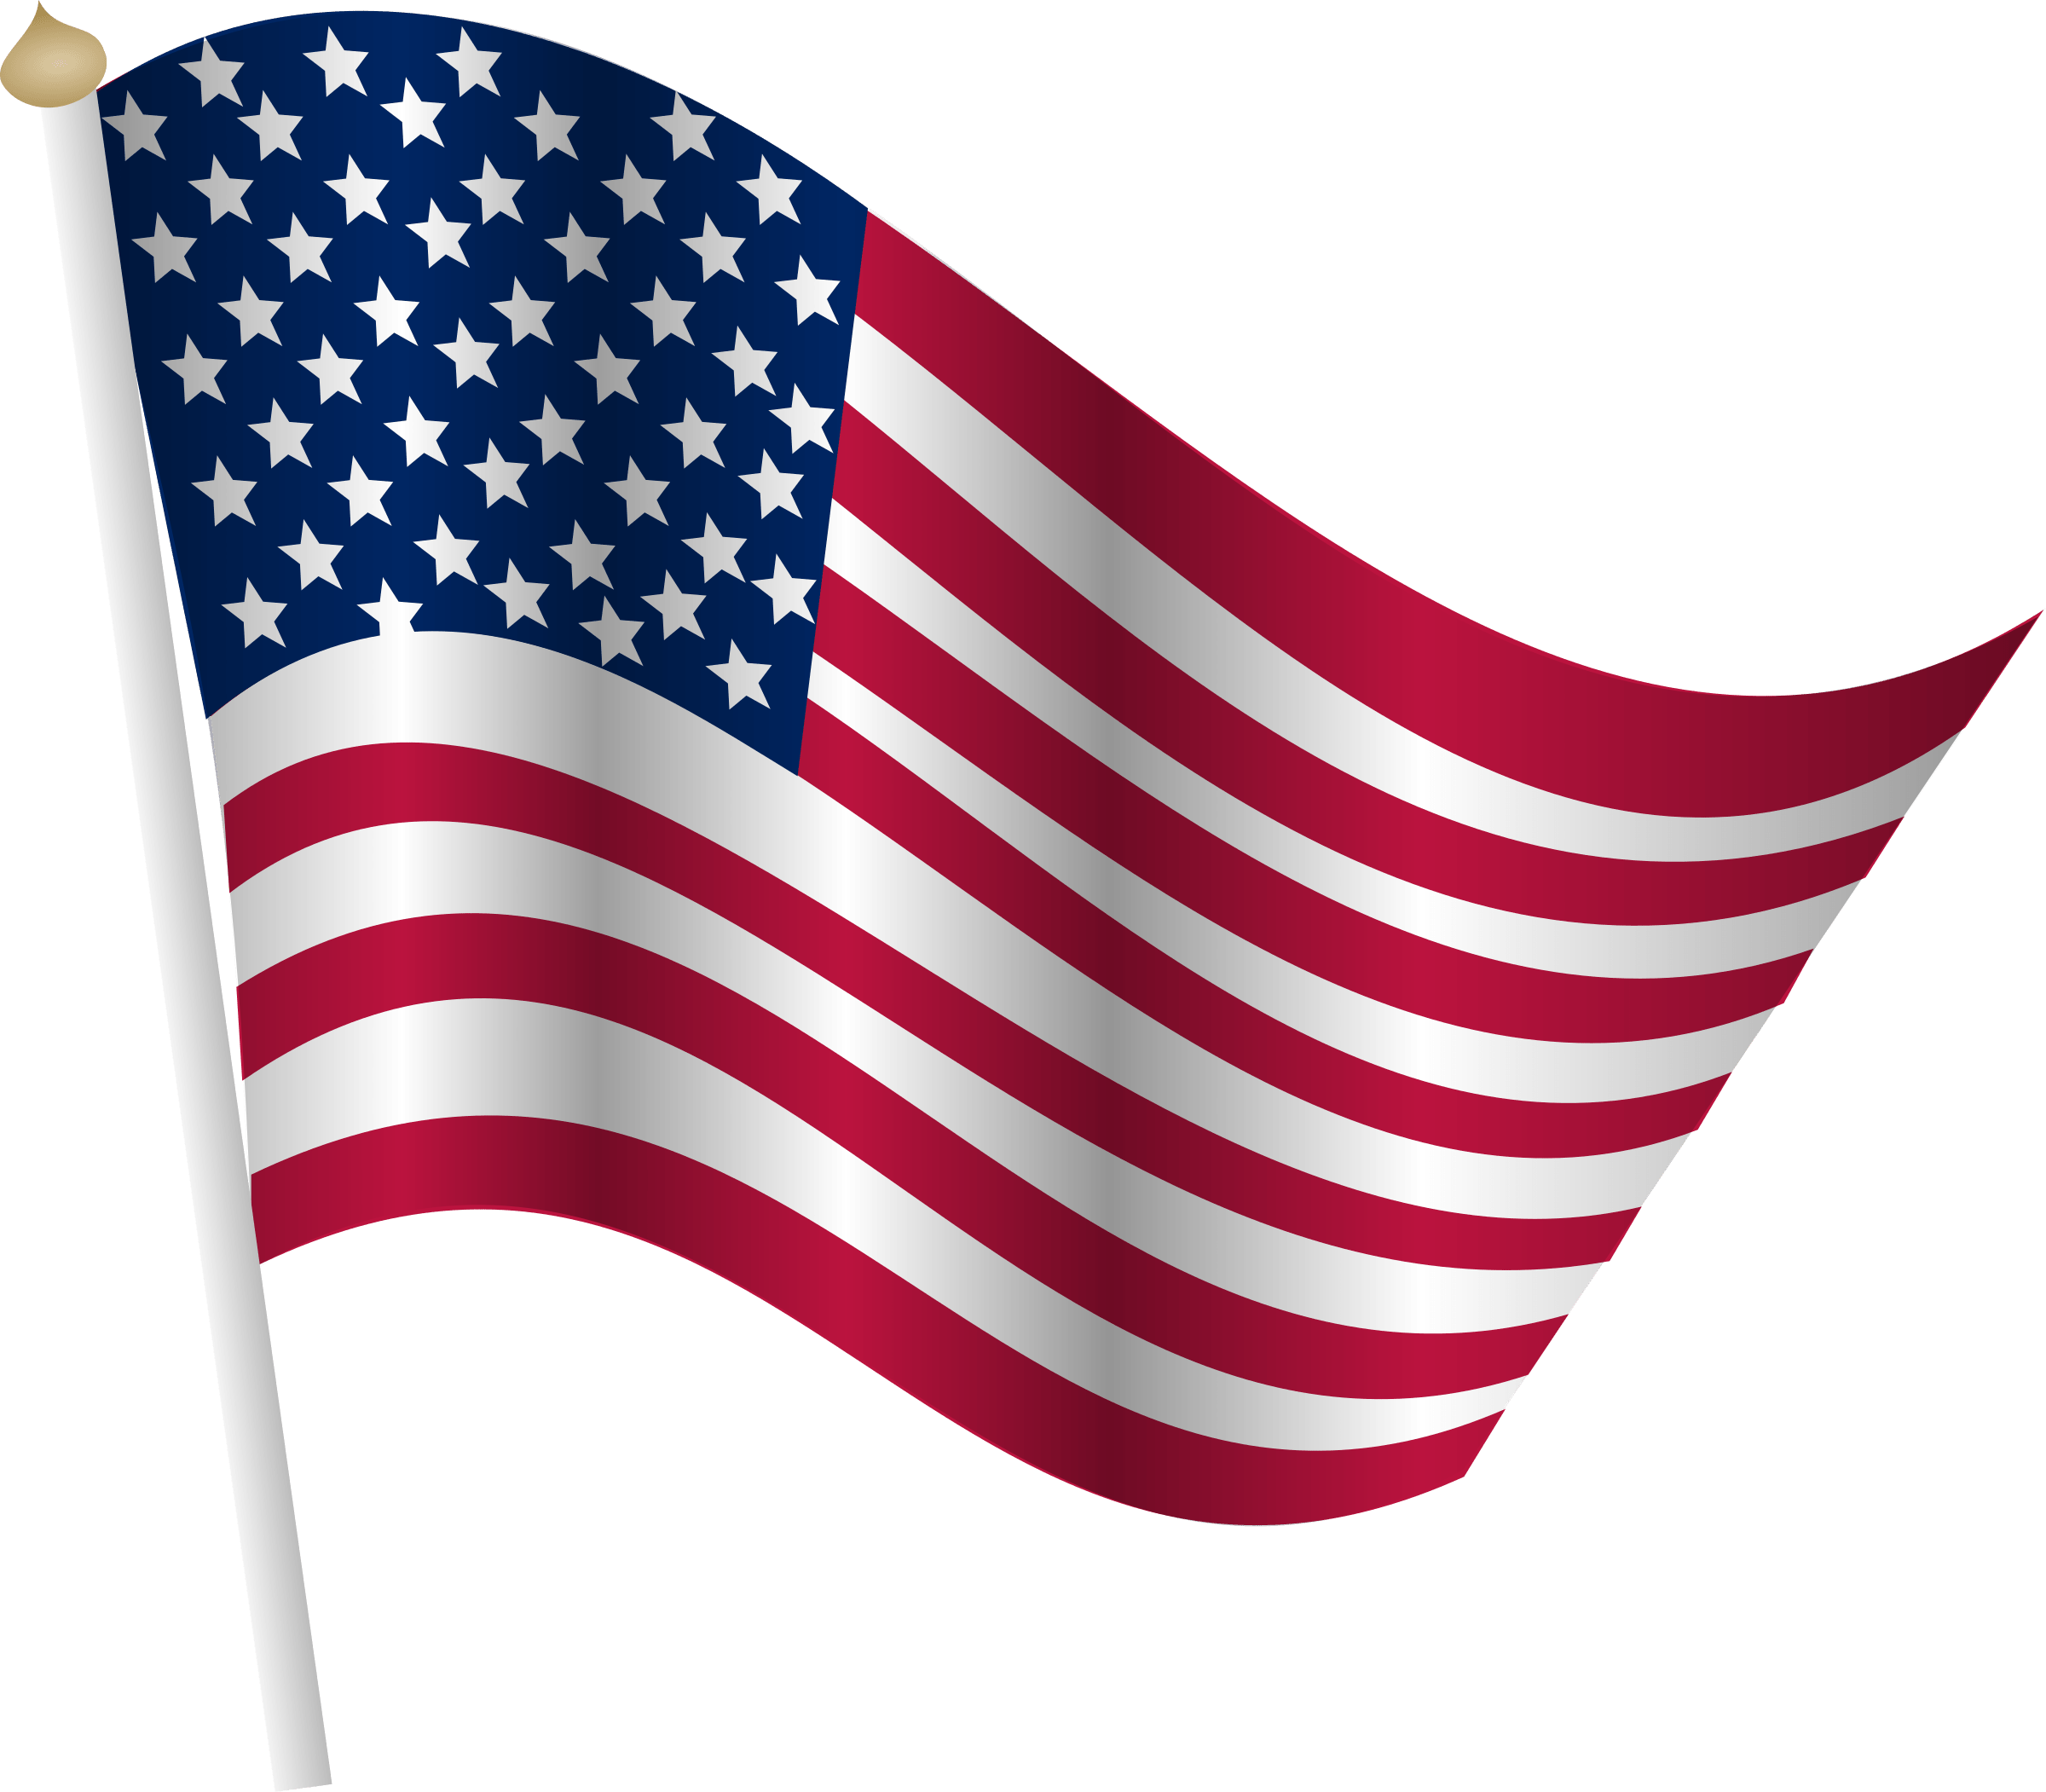 USA Flags Clipart